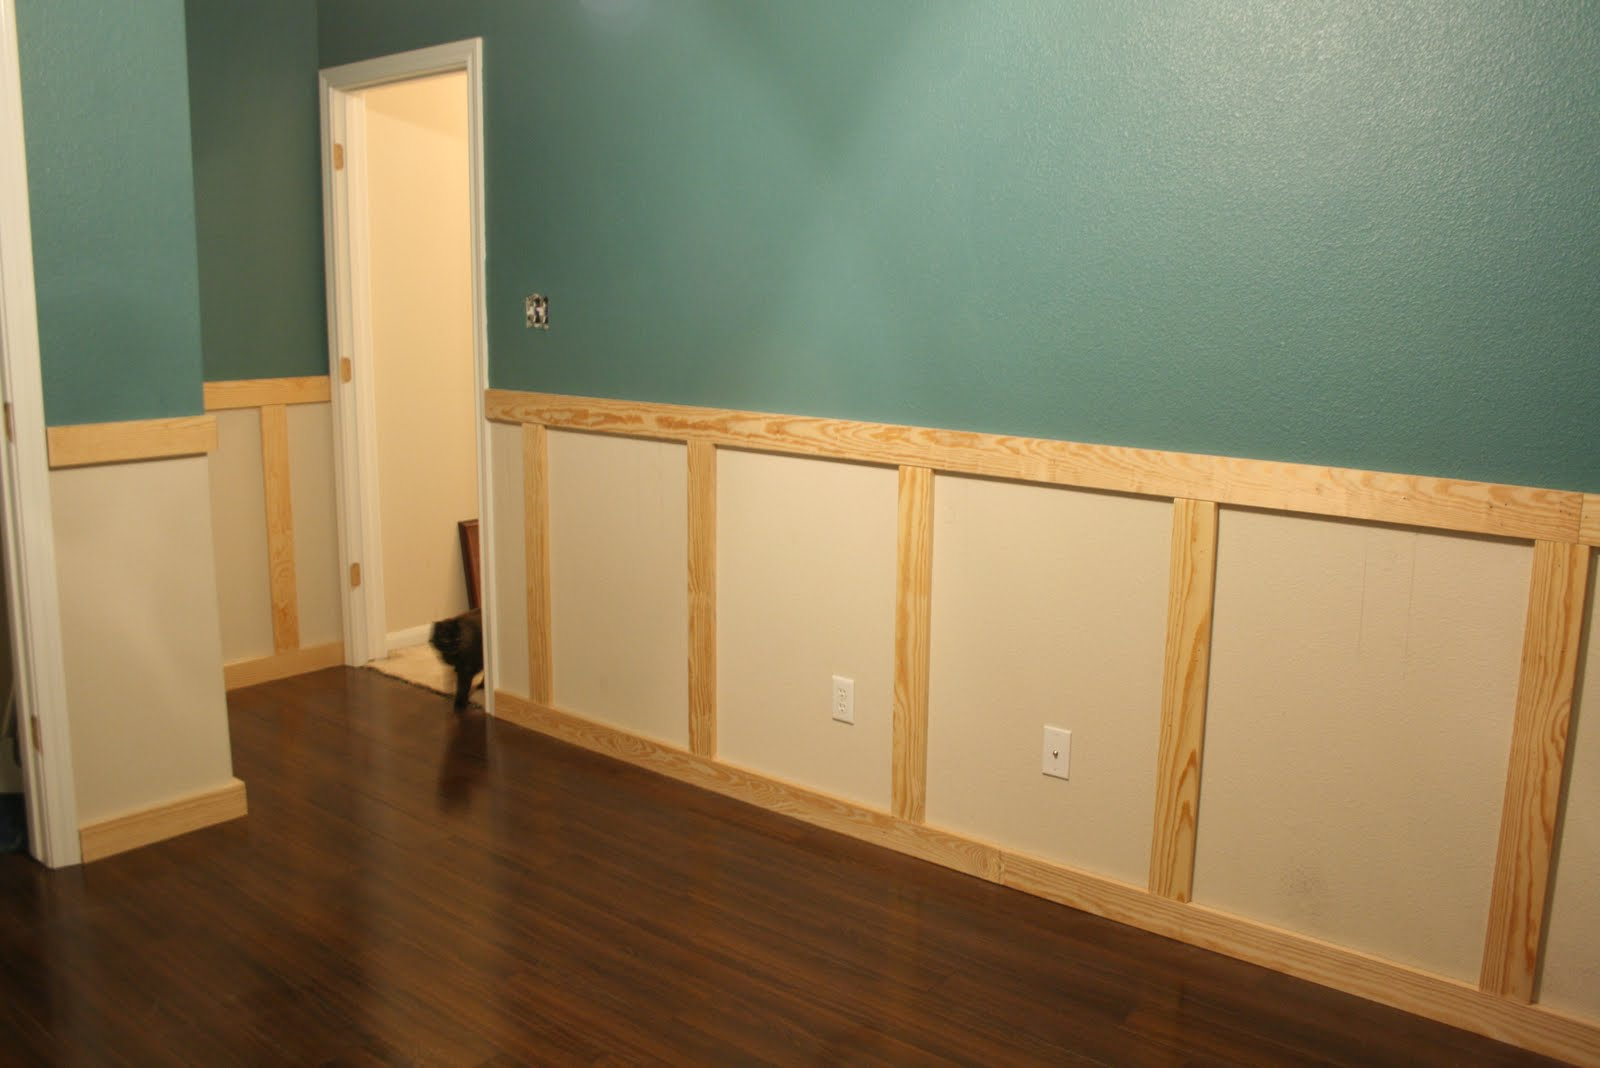 Wainscoting: Installation (Stage 1) | The Savvy Bee